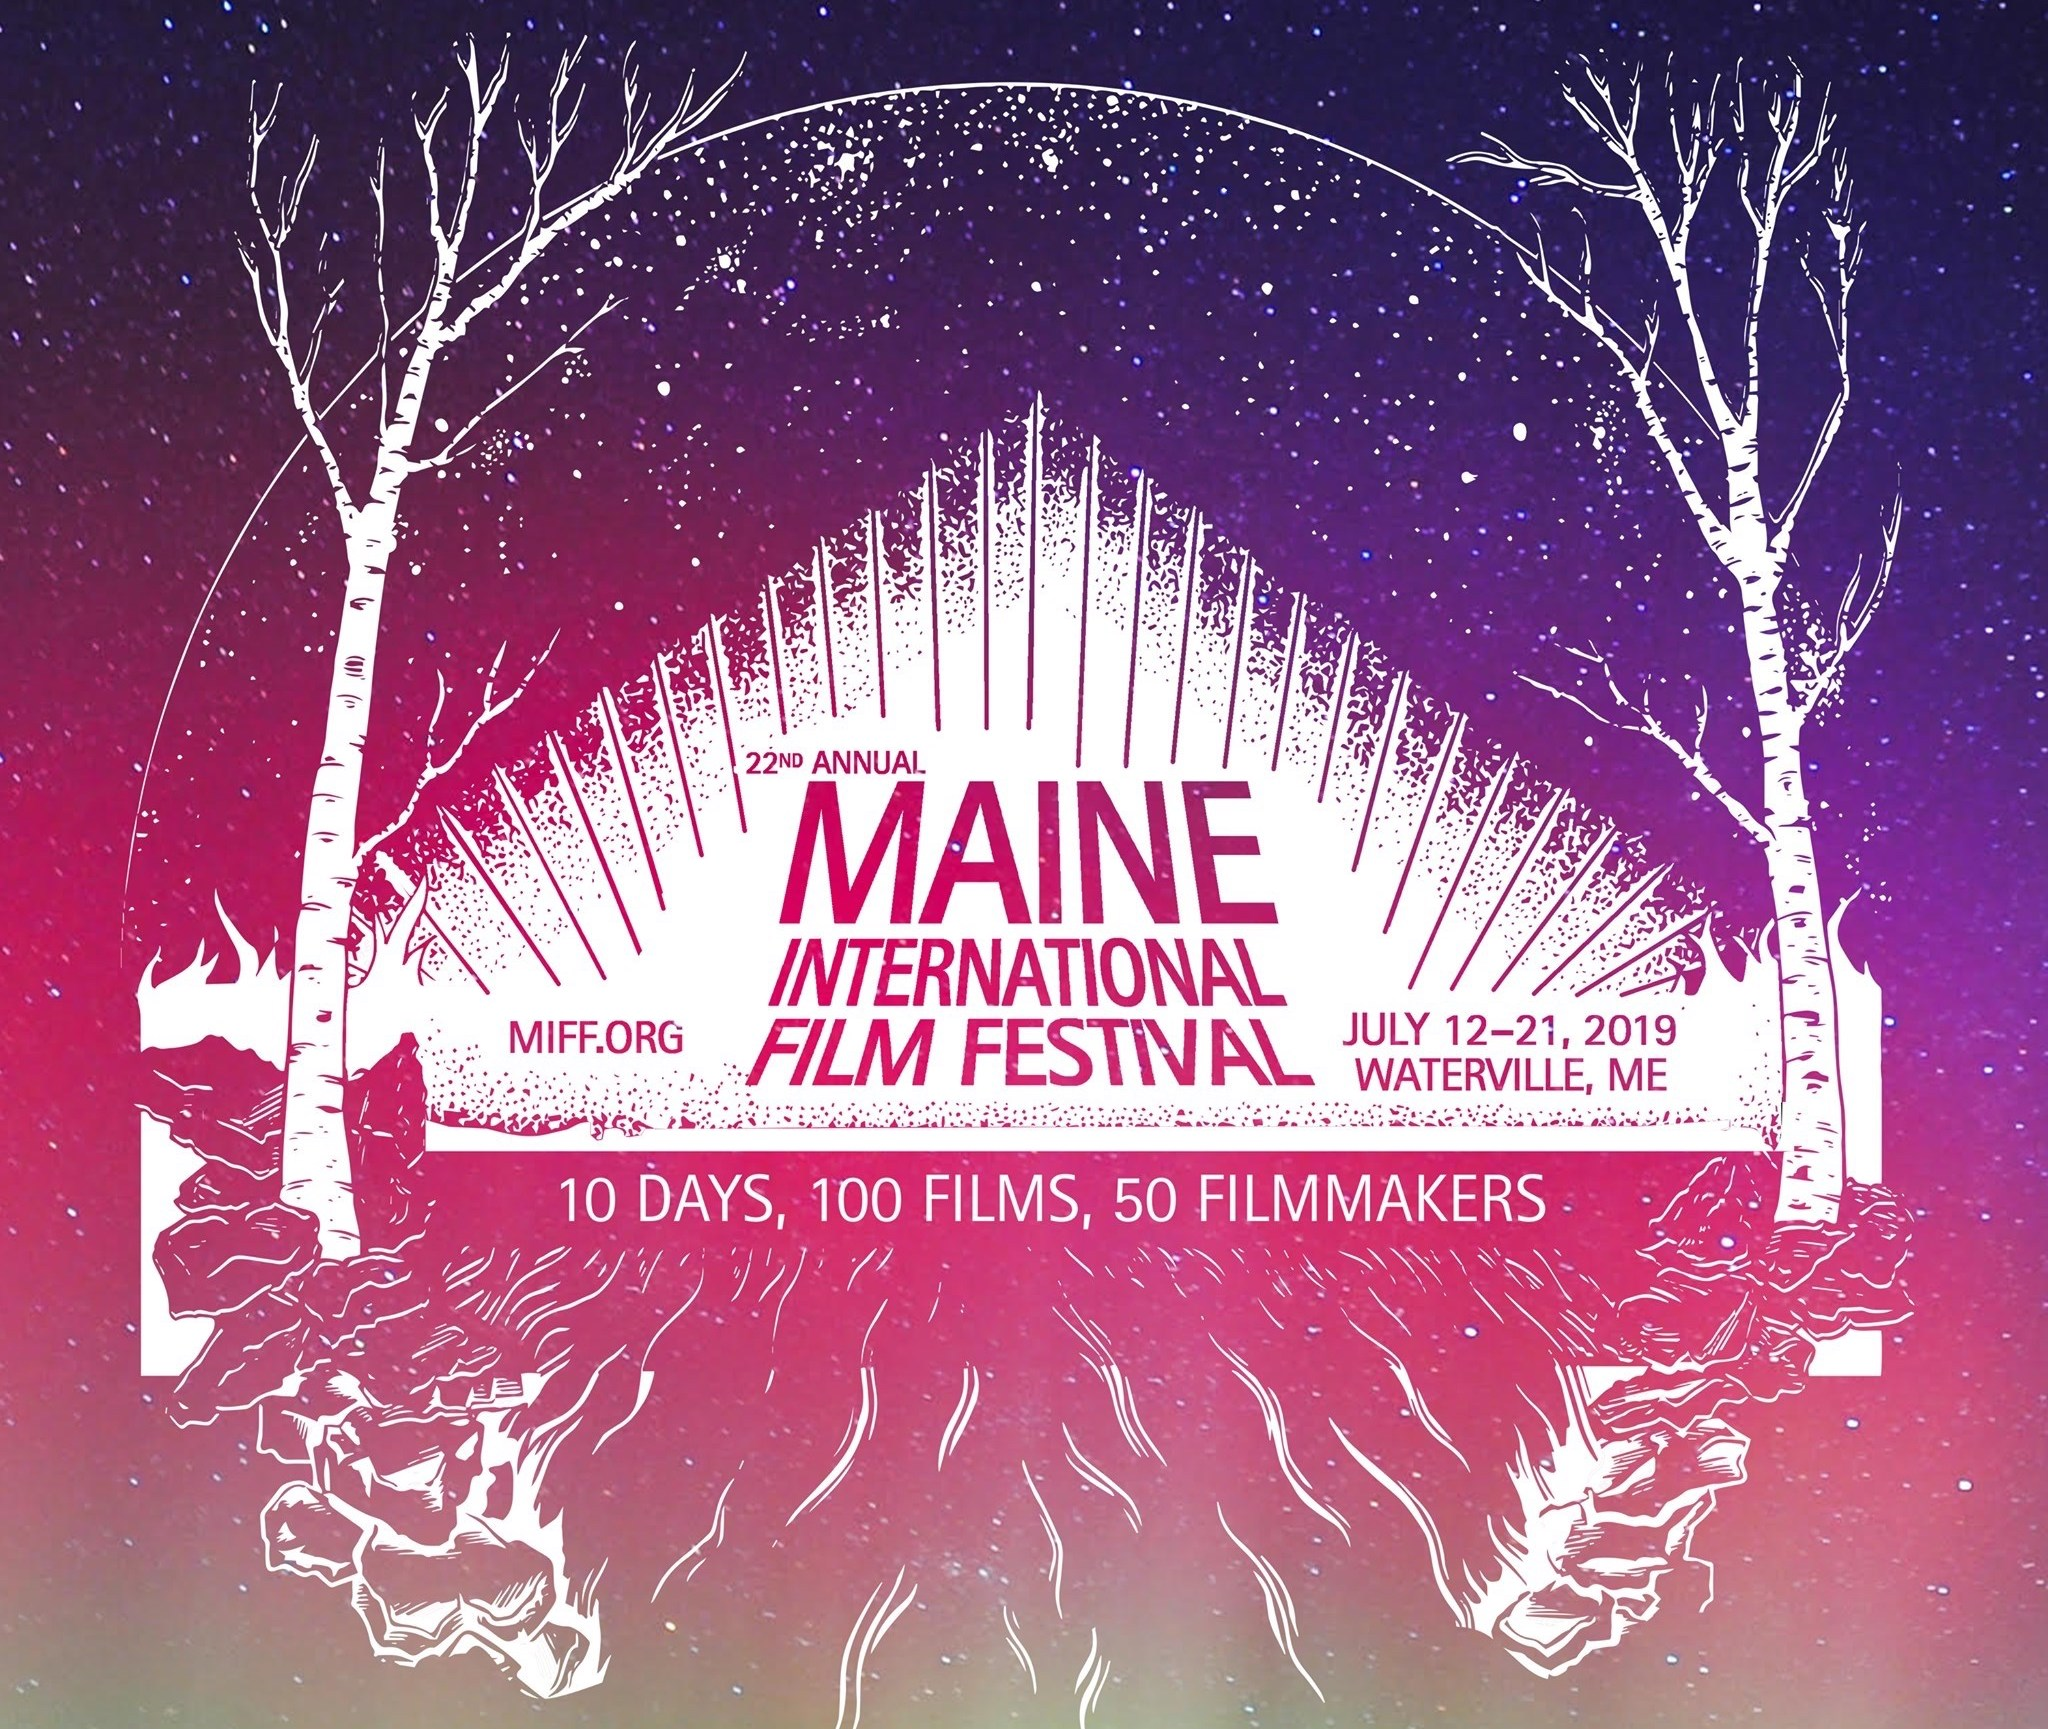 Maine International Film Festival 22